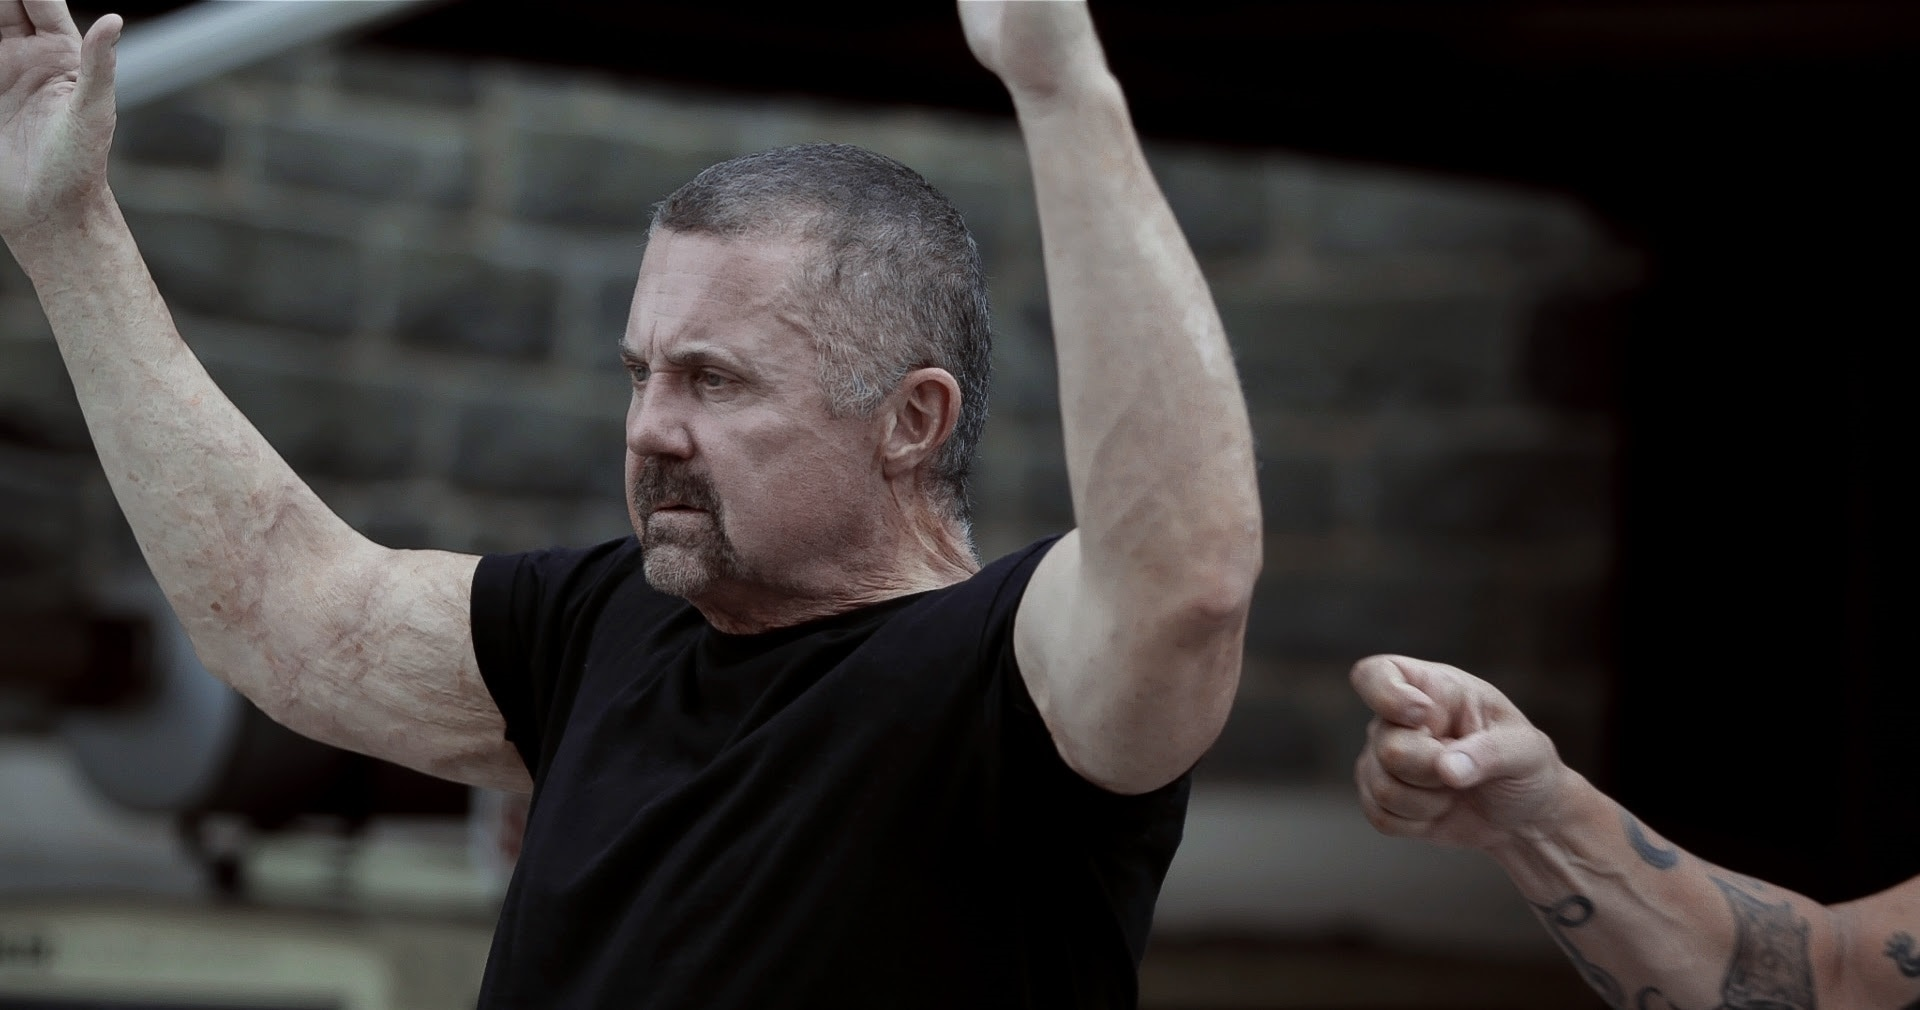 ROOM 9 4 - First Look: Kane Hodder in Tom Walton's ROOM 9